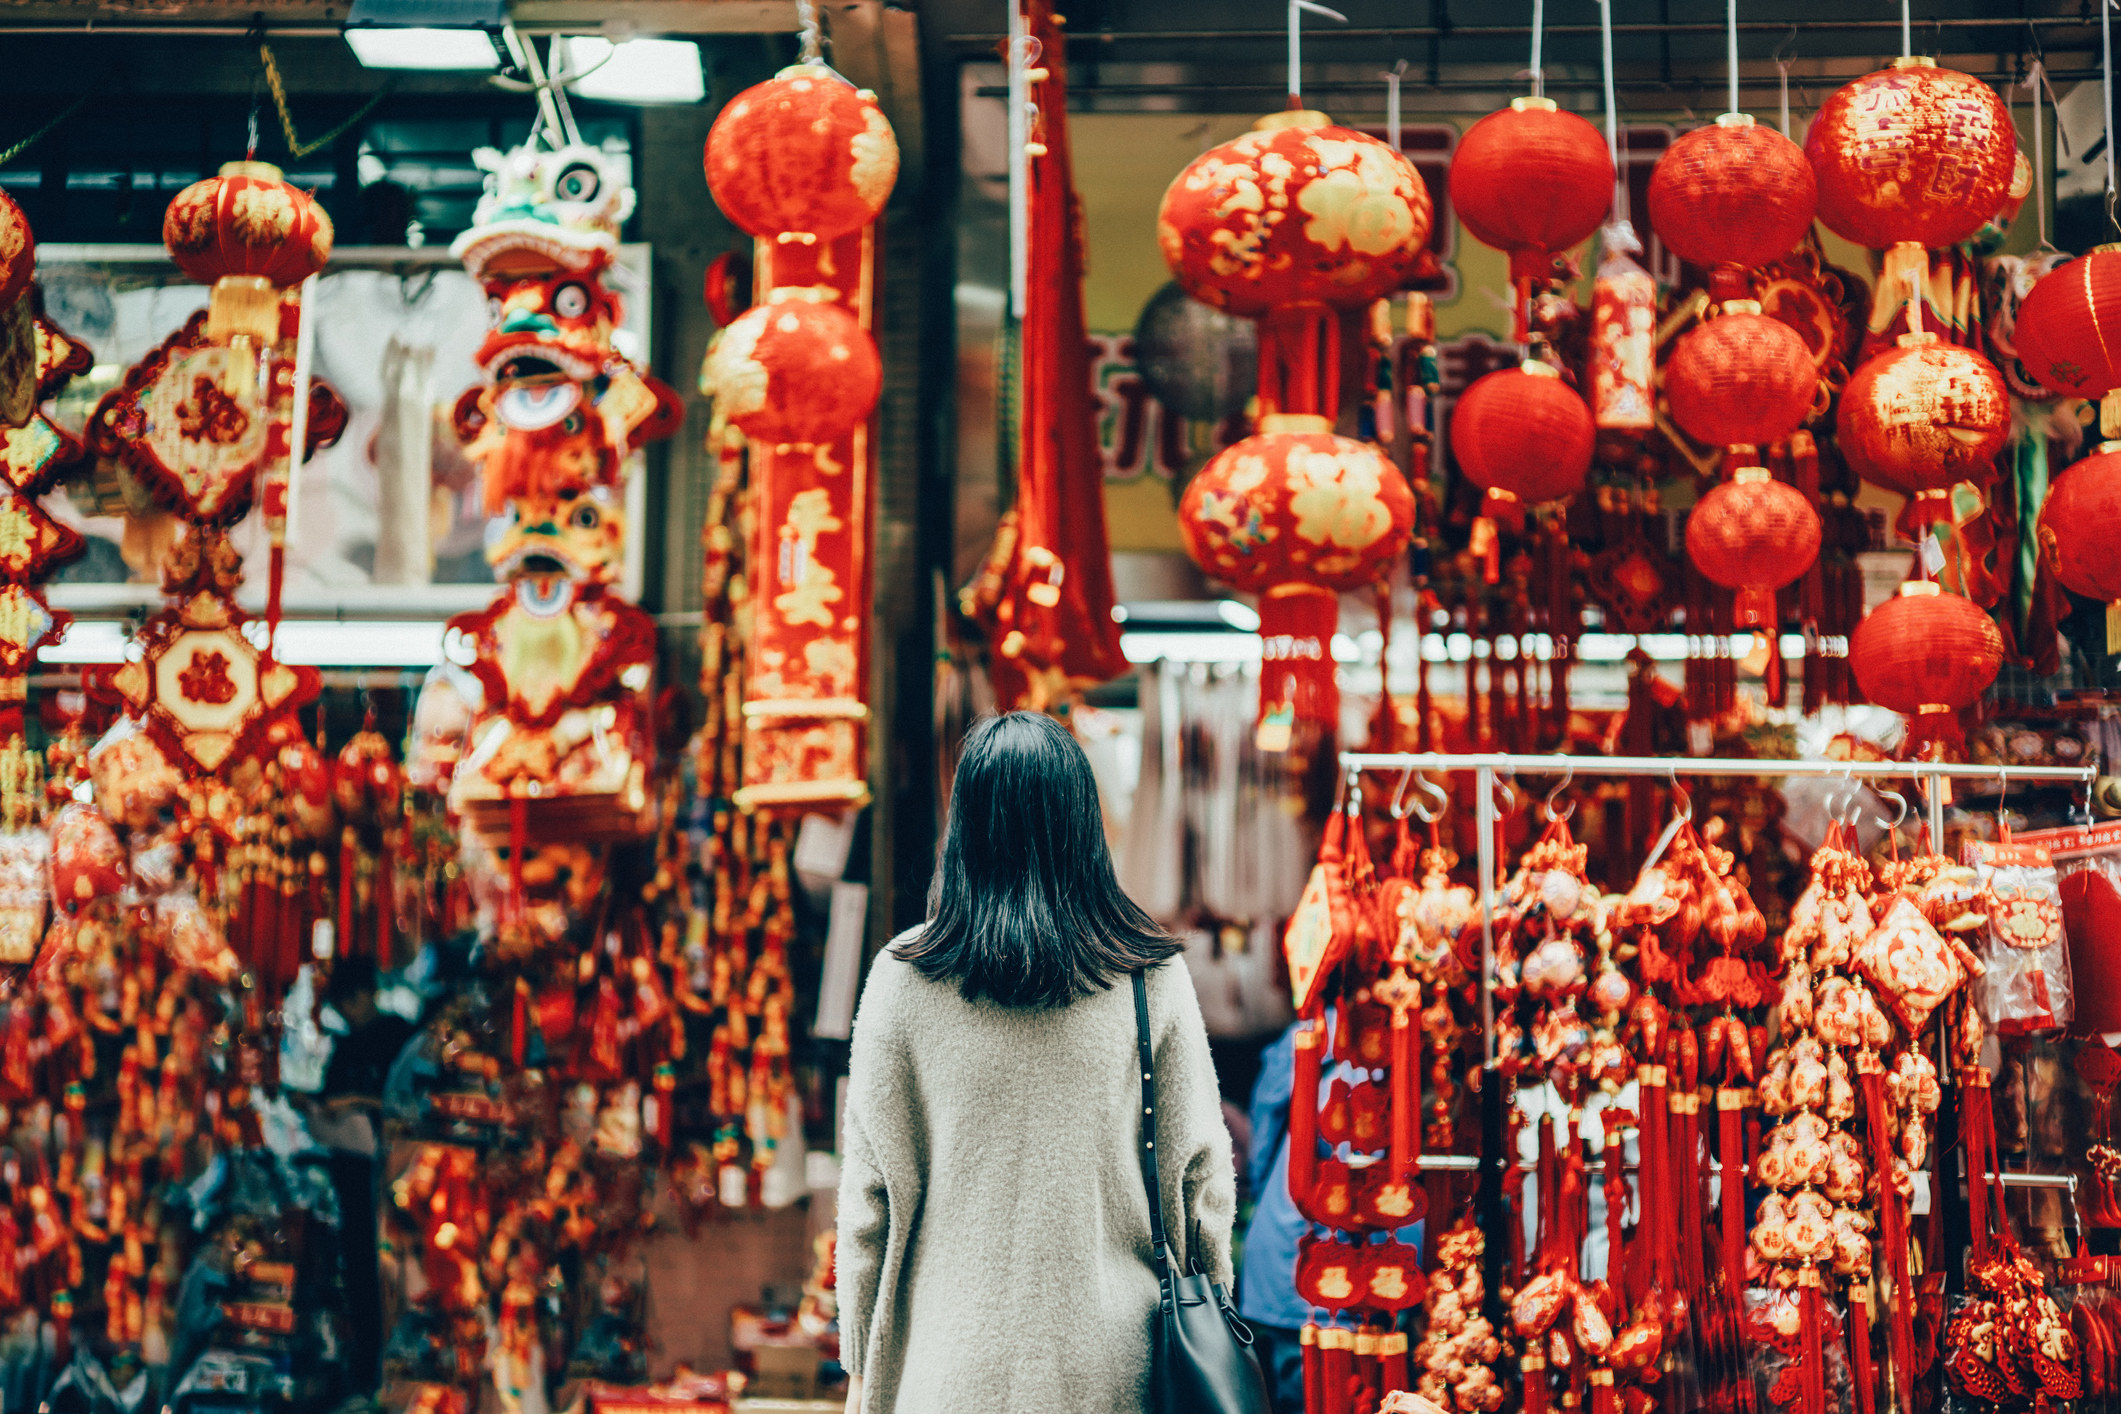 woman standing against Chinese New Year decorations and ornaments